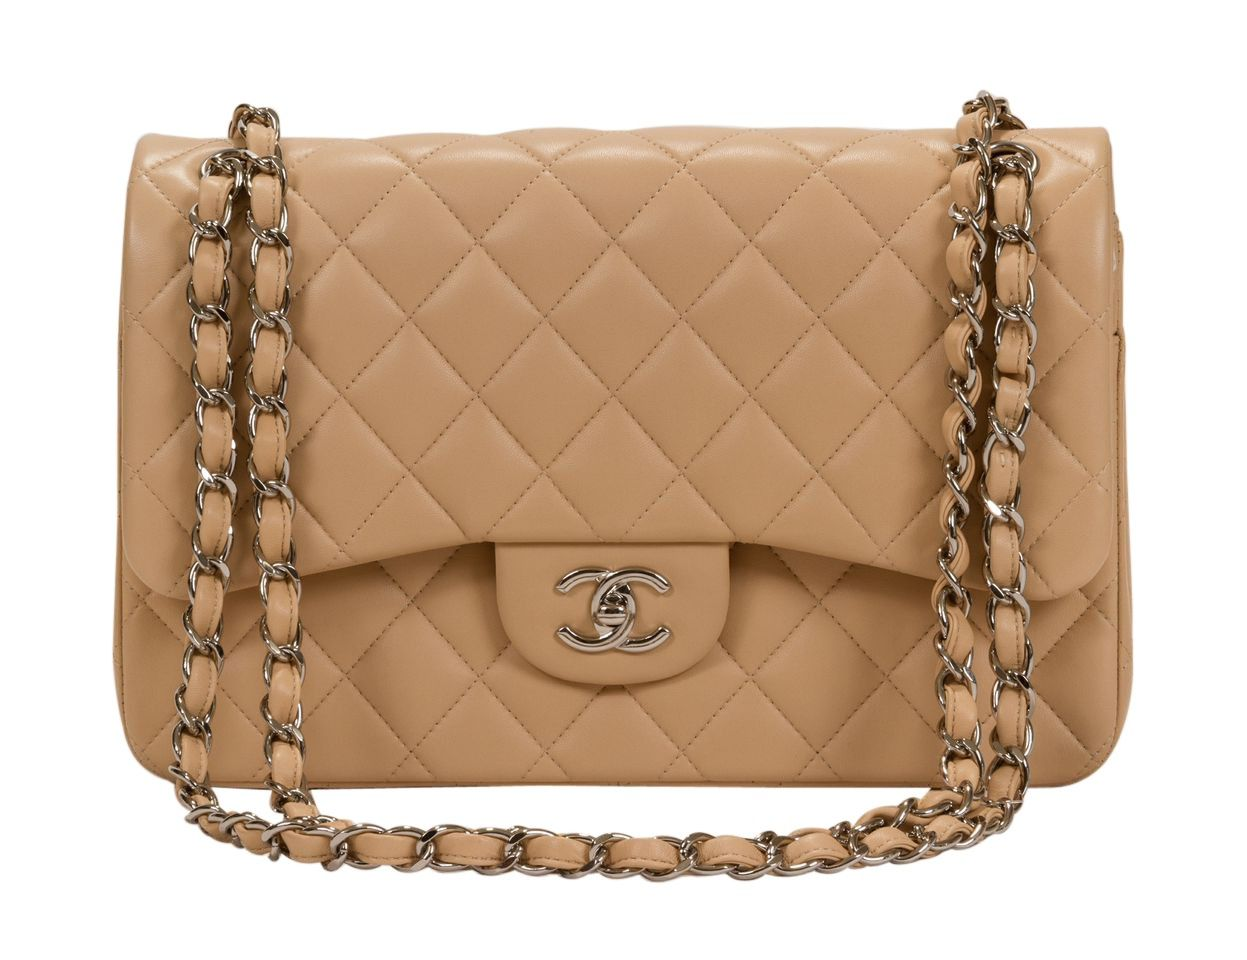 212872a5d5f0 Chanel Beige Lambskin Jumbo Double Flap NWT - Brand New With Tags Chanel  classic jumbo double flap purse. Silver metal hardware and beige quilted  lambskin.